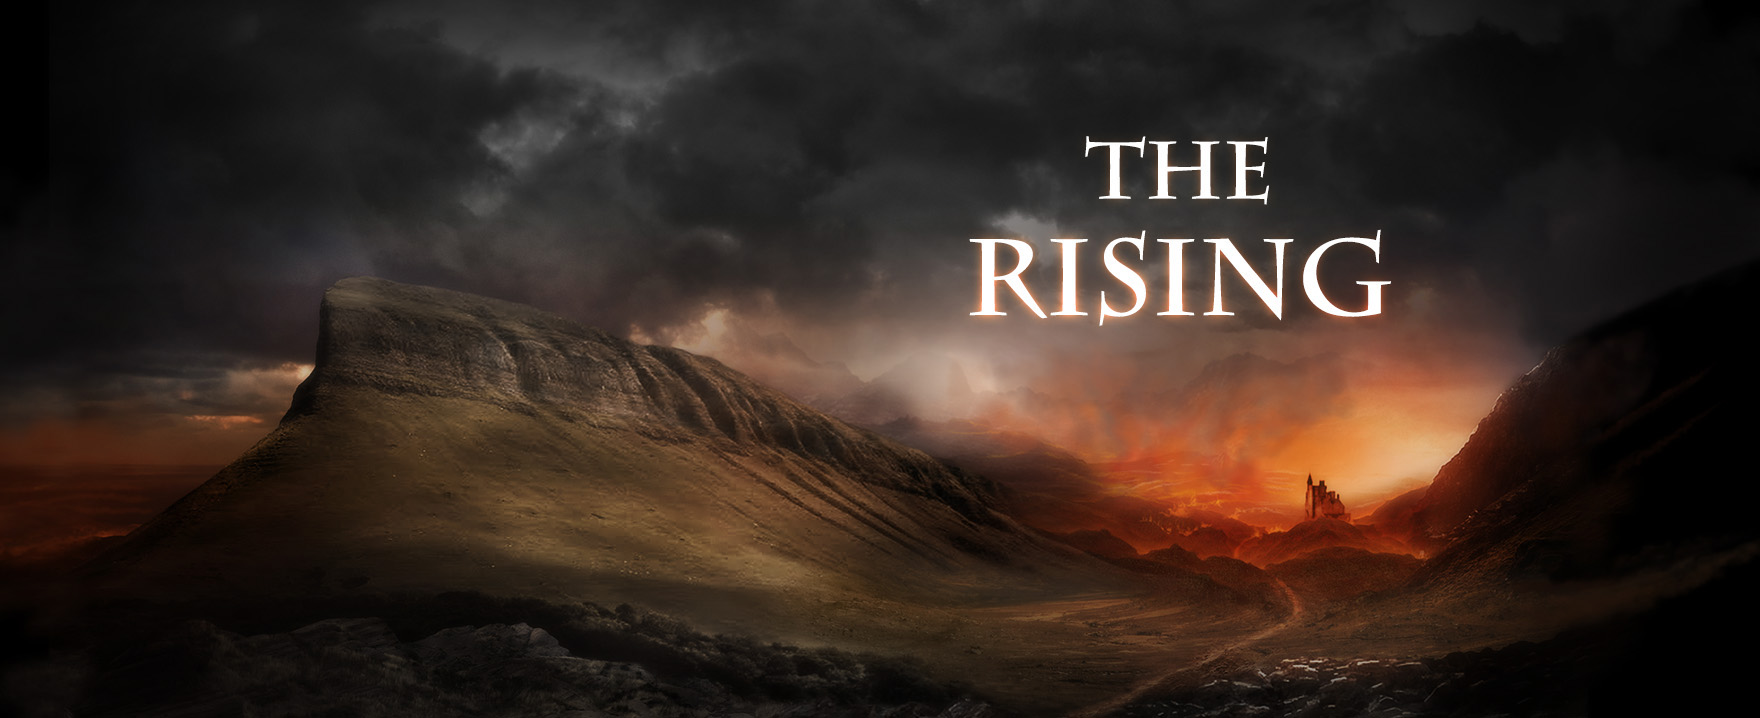 The Rising - The Movie